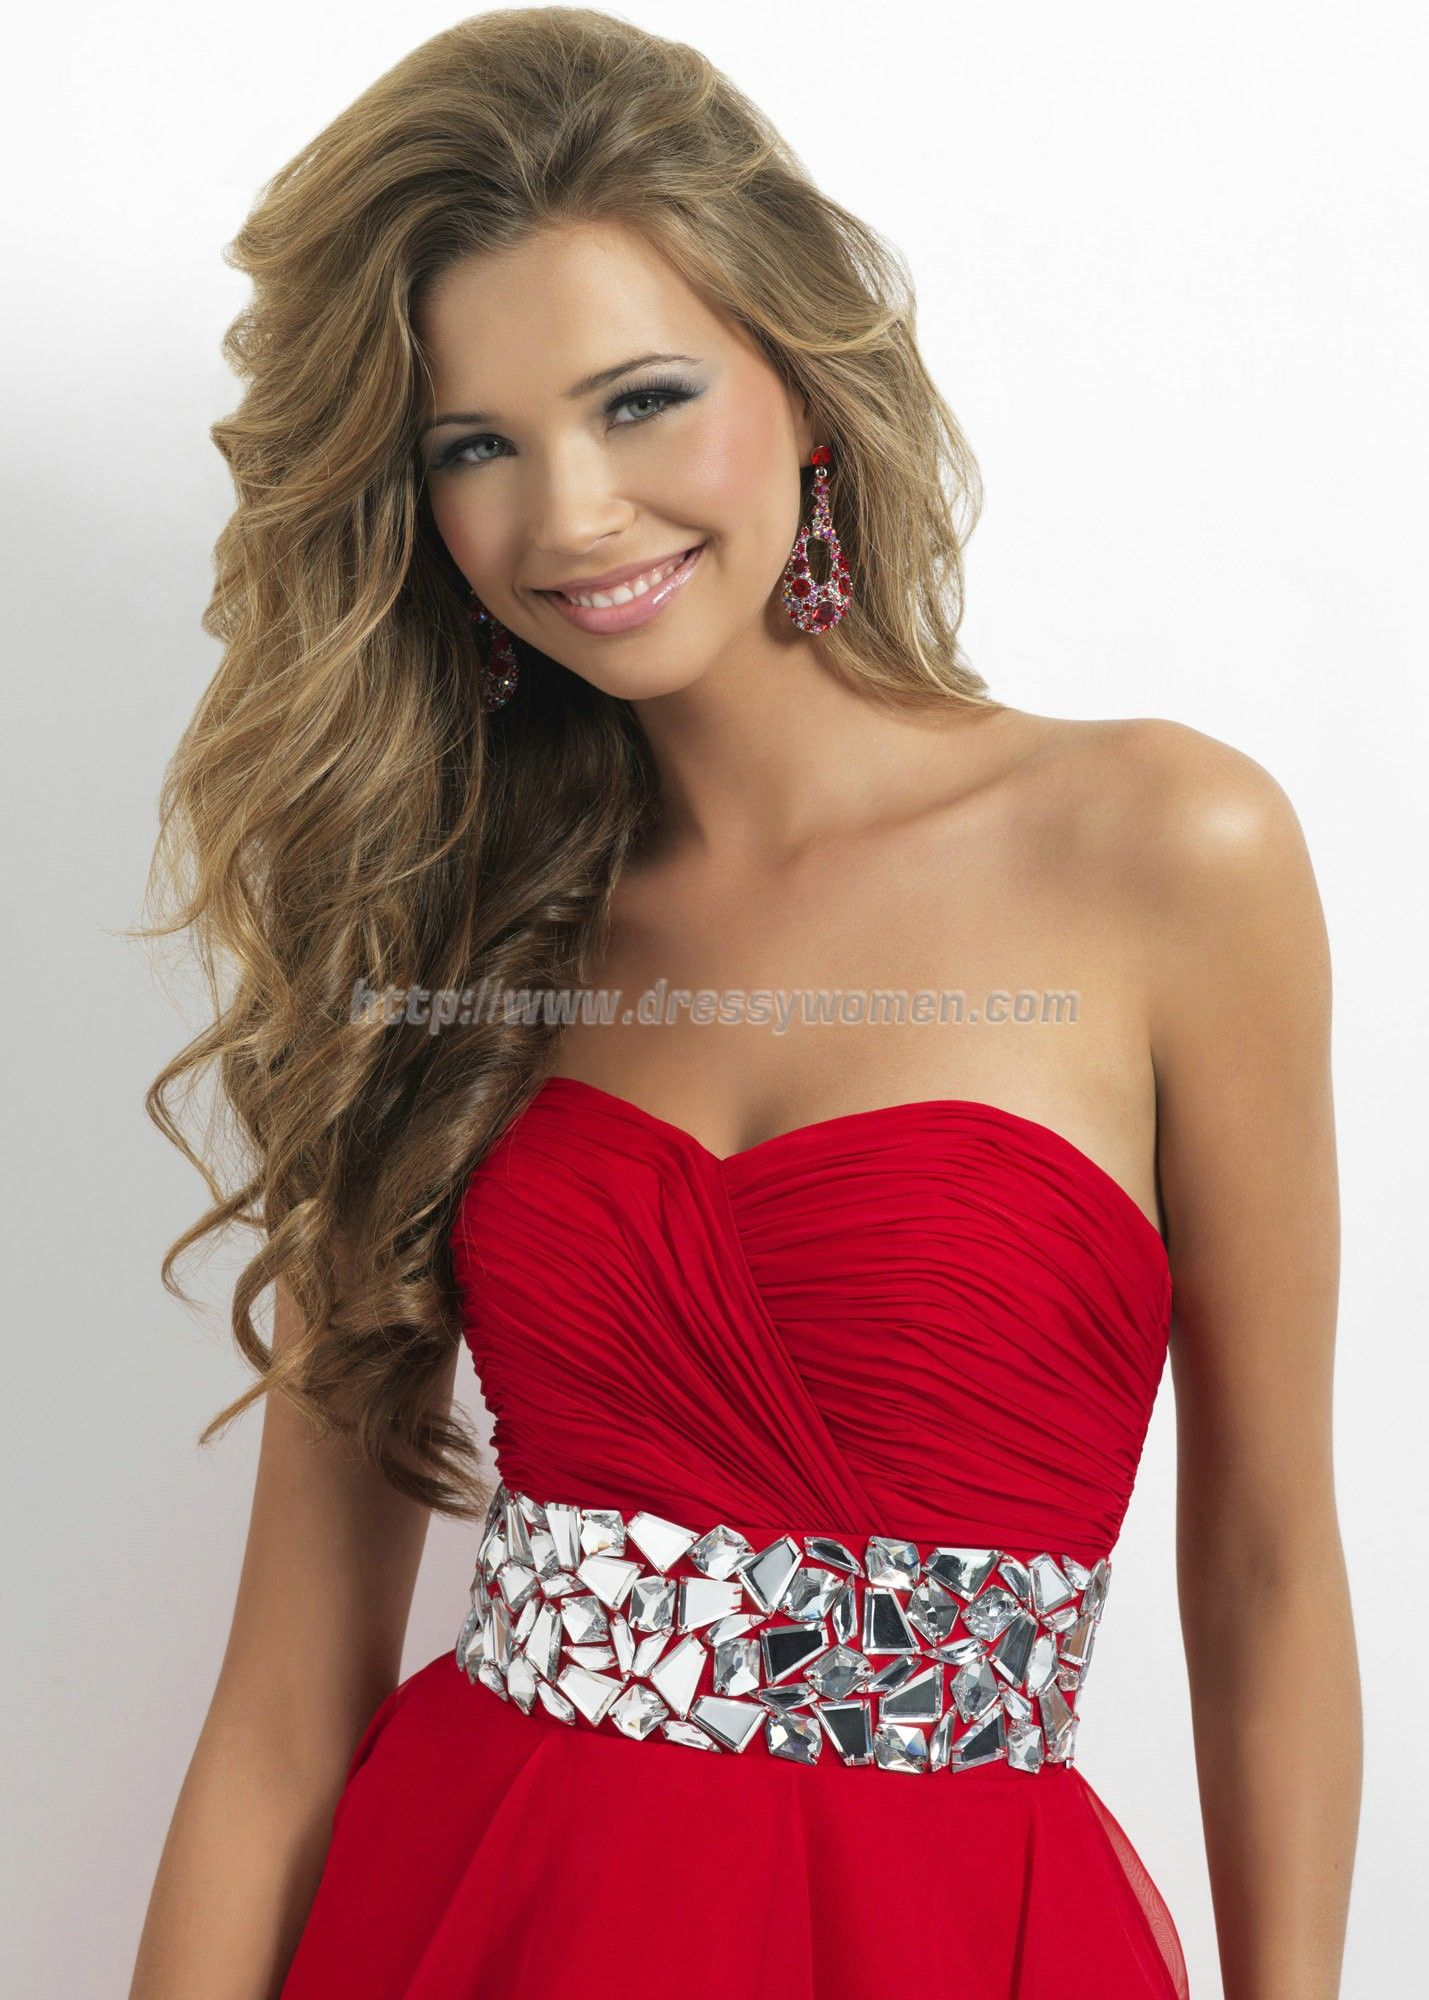 Pretty hair for homecoming long and curled with heavy side part and